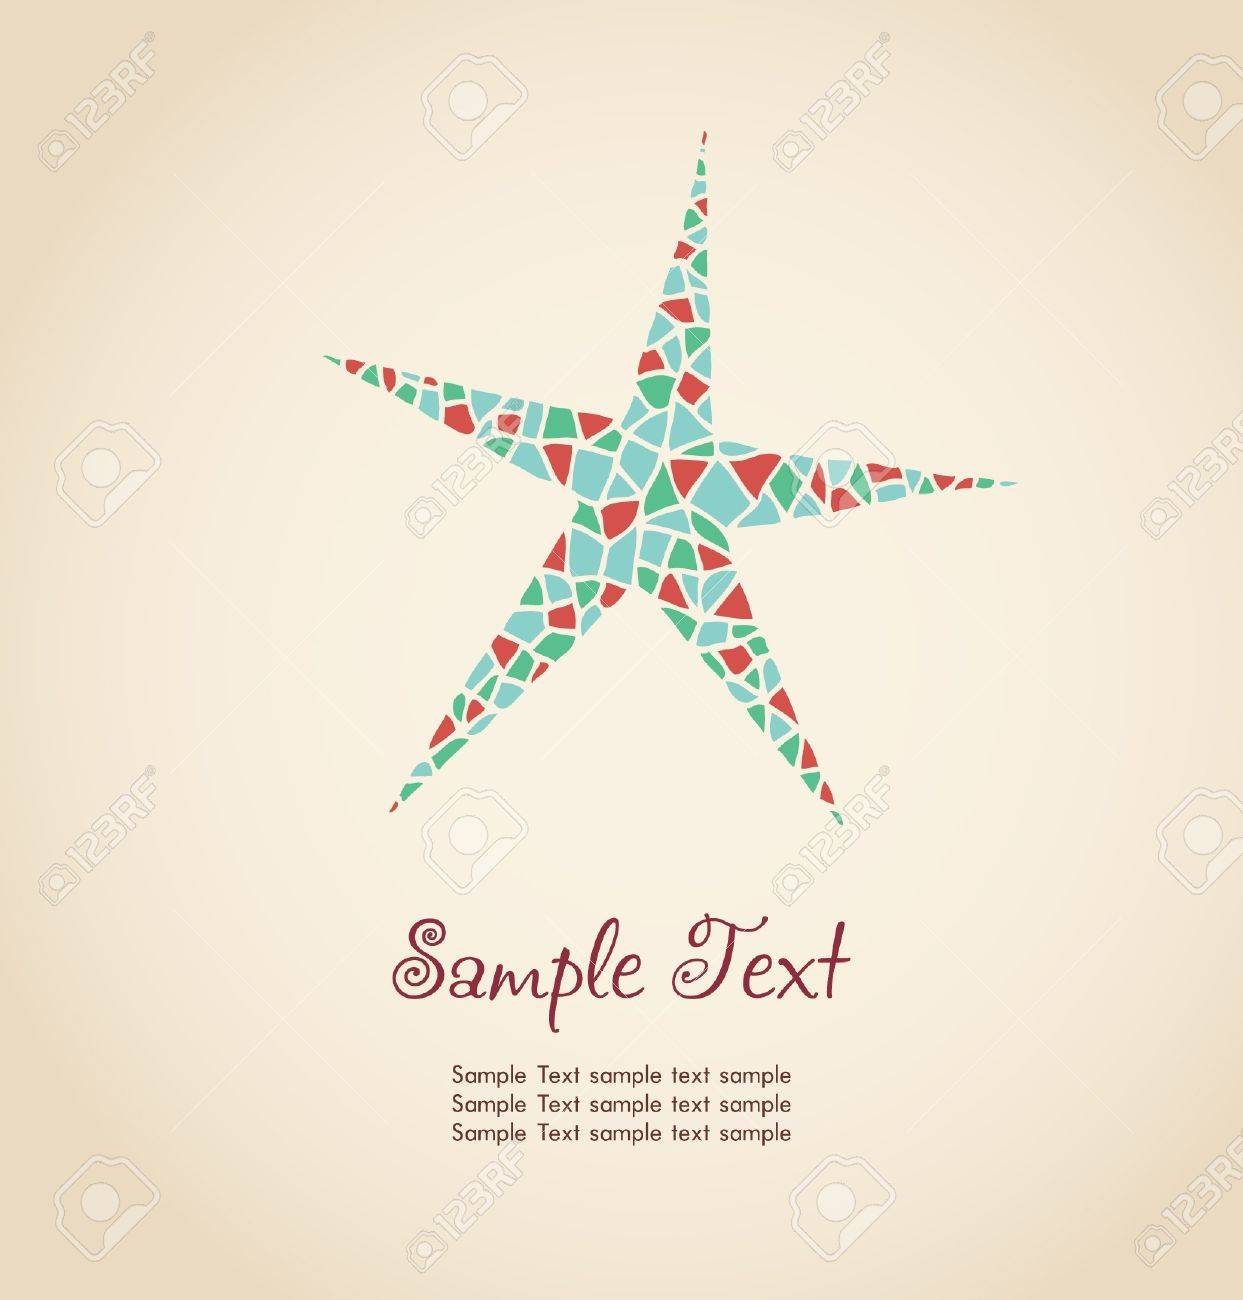 Decorative stylized colorful star  Hand drawn ornamental illustration with place for your text  Template for design Stock Vector - 17272523